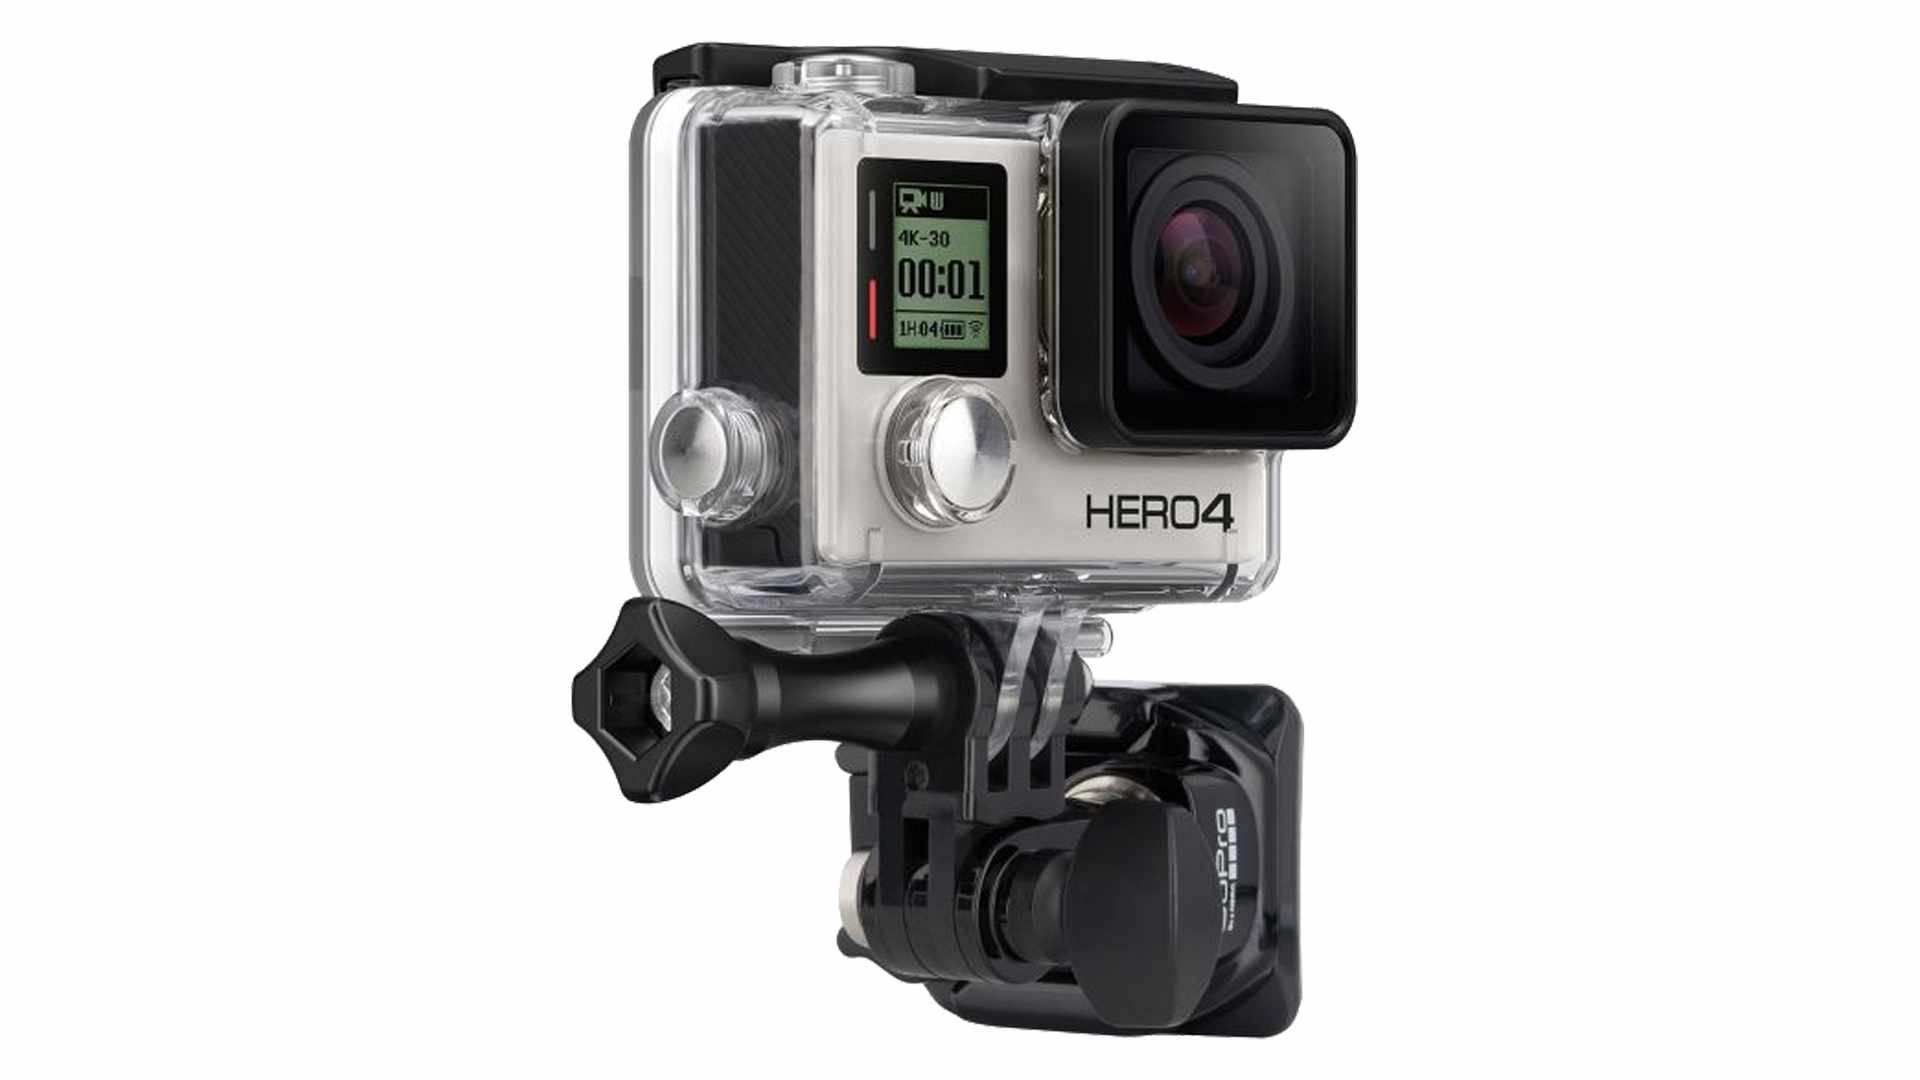 Photo of a GoPro camera on a helmet mount, on a white background